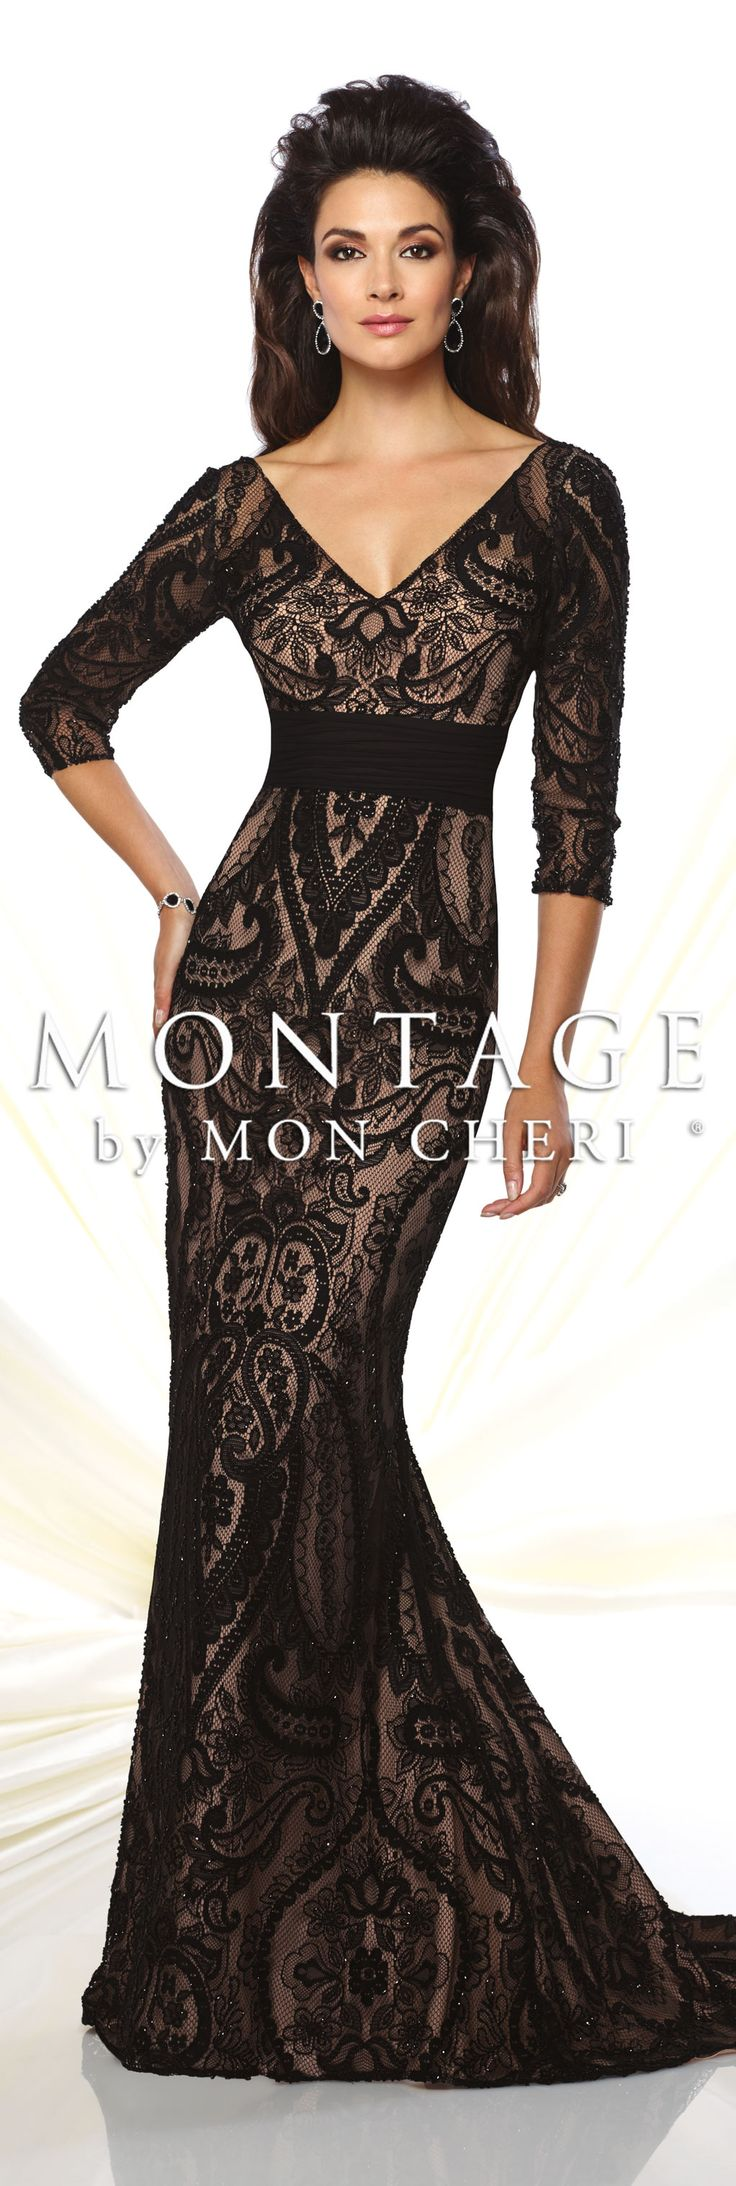 Montage by Mon Cheri Spring 2016 - Style No. 116952 #eveninggowns